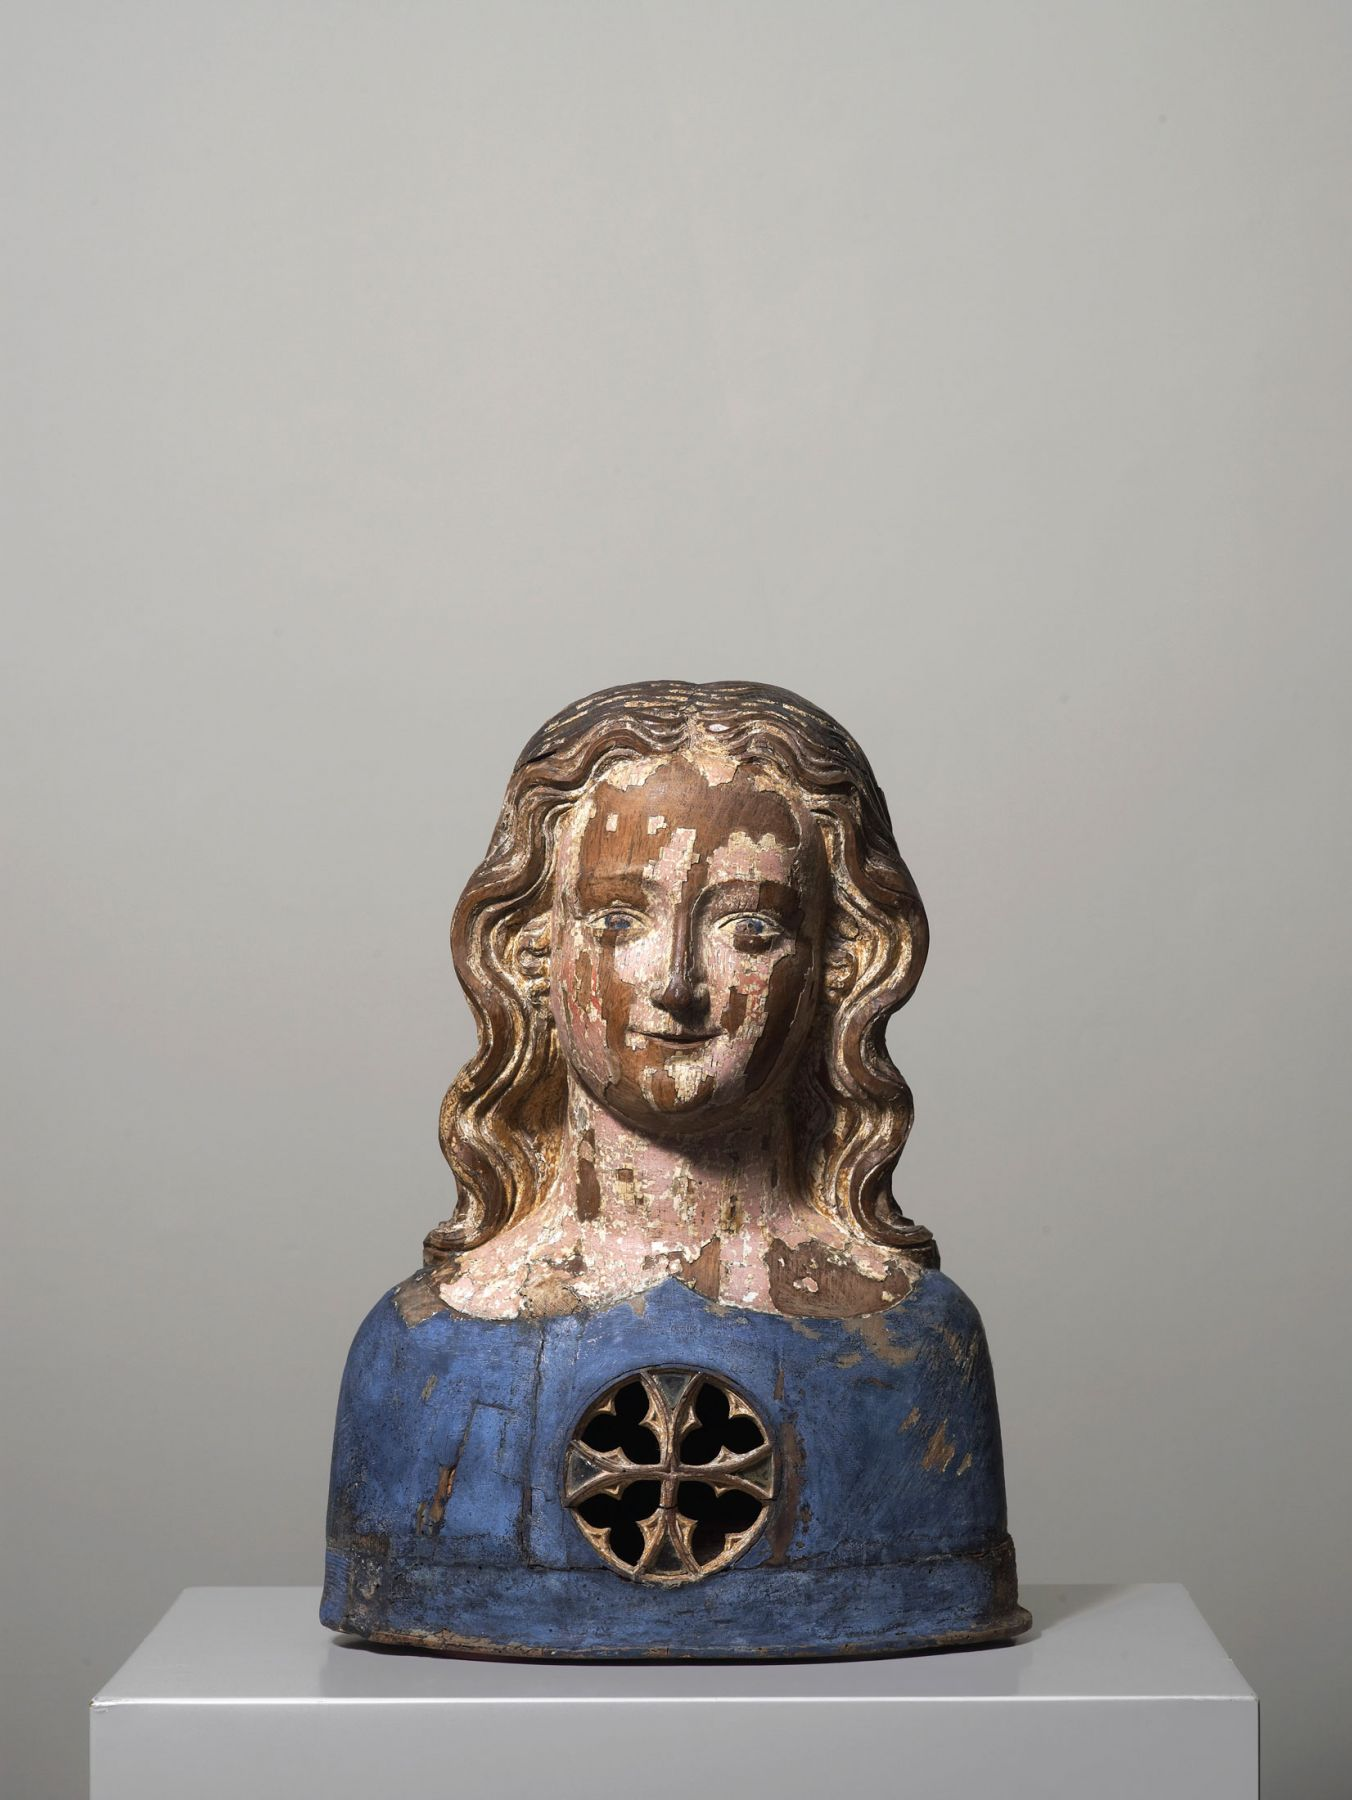 A reliquary bust of one of the 11,000 Virgins, Cologne,Germany